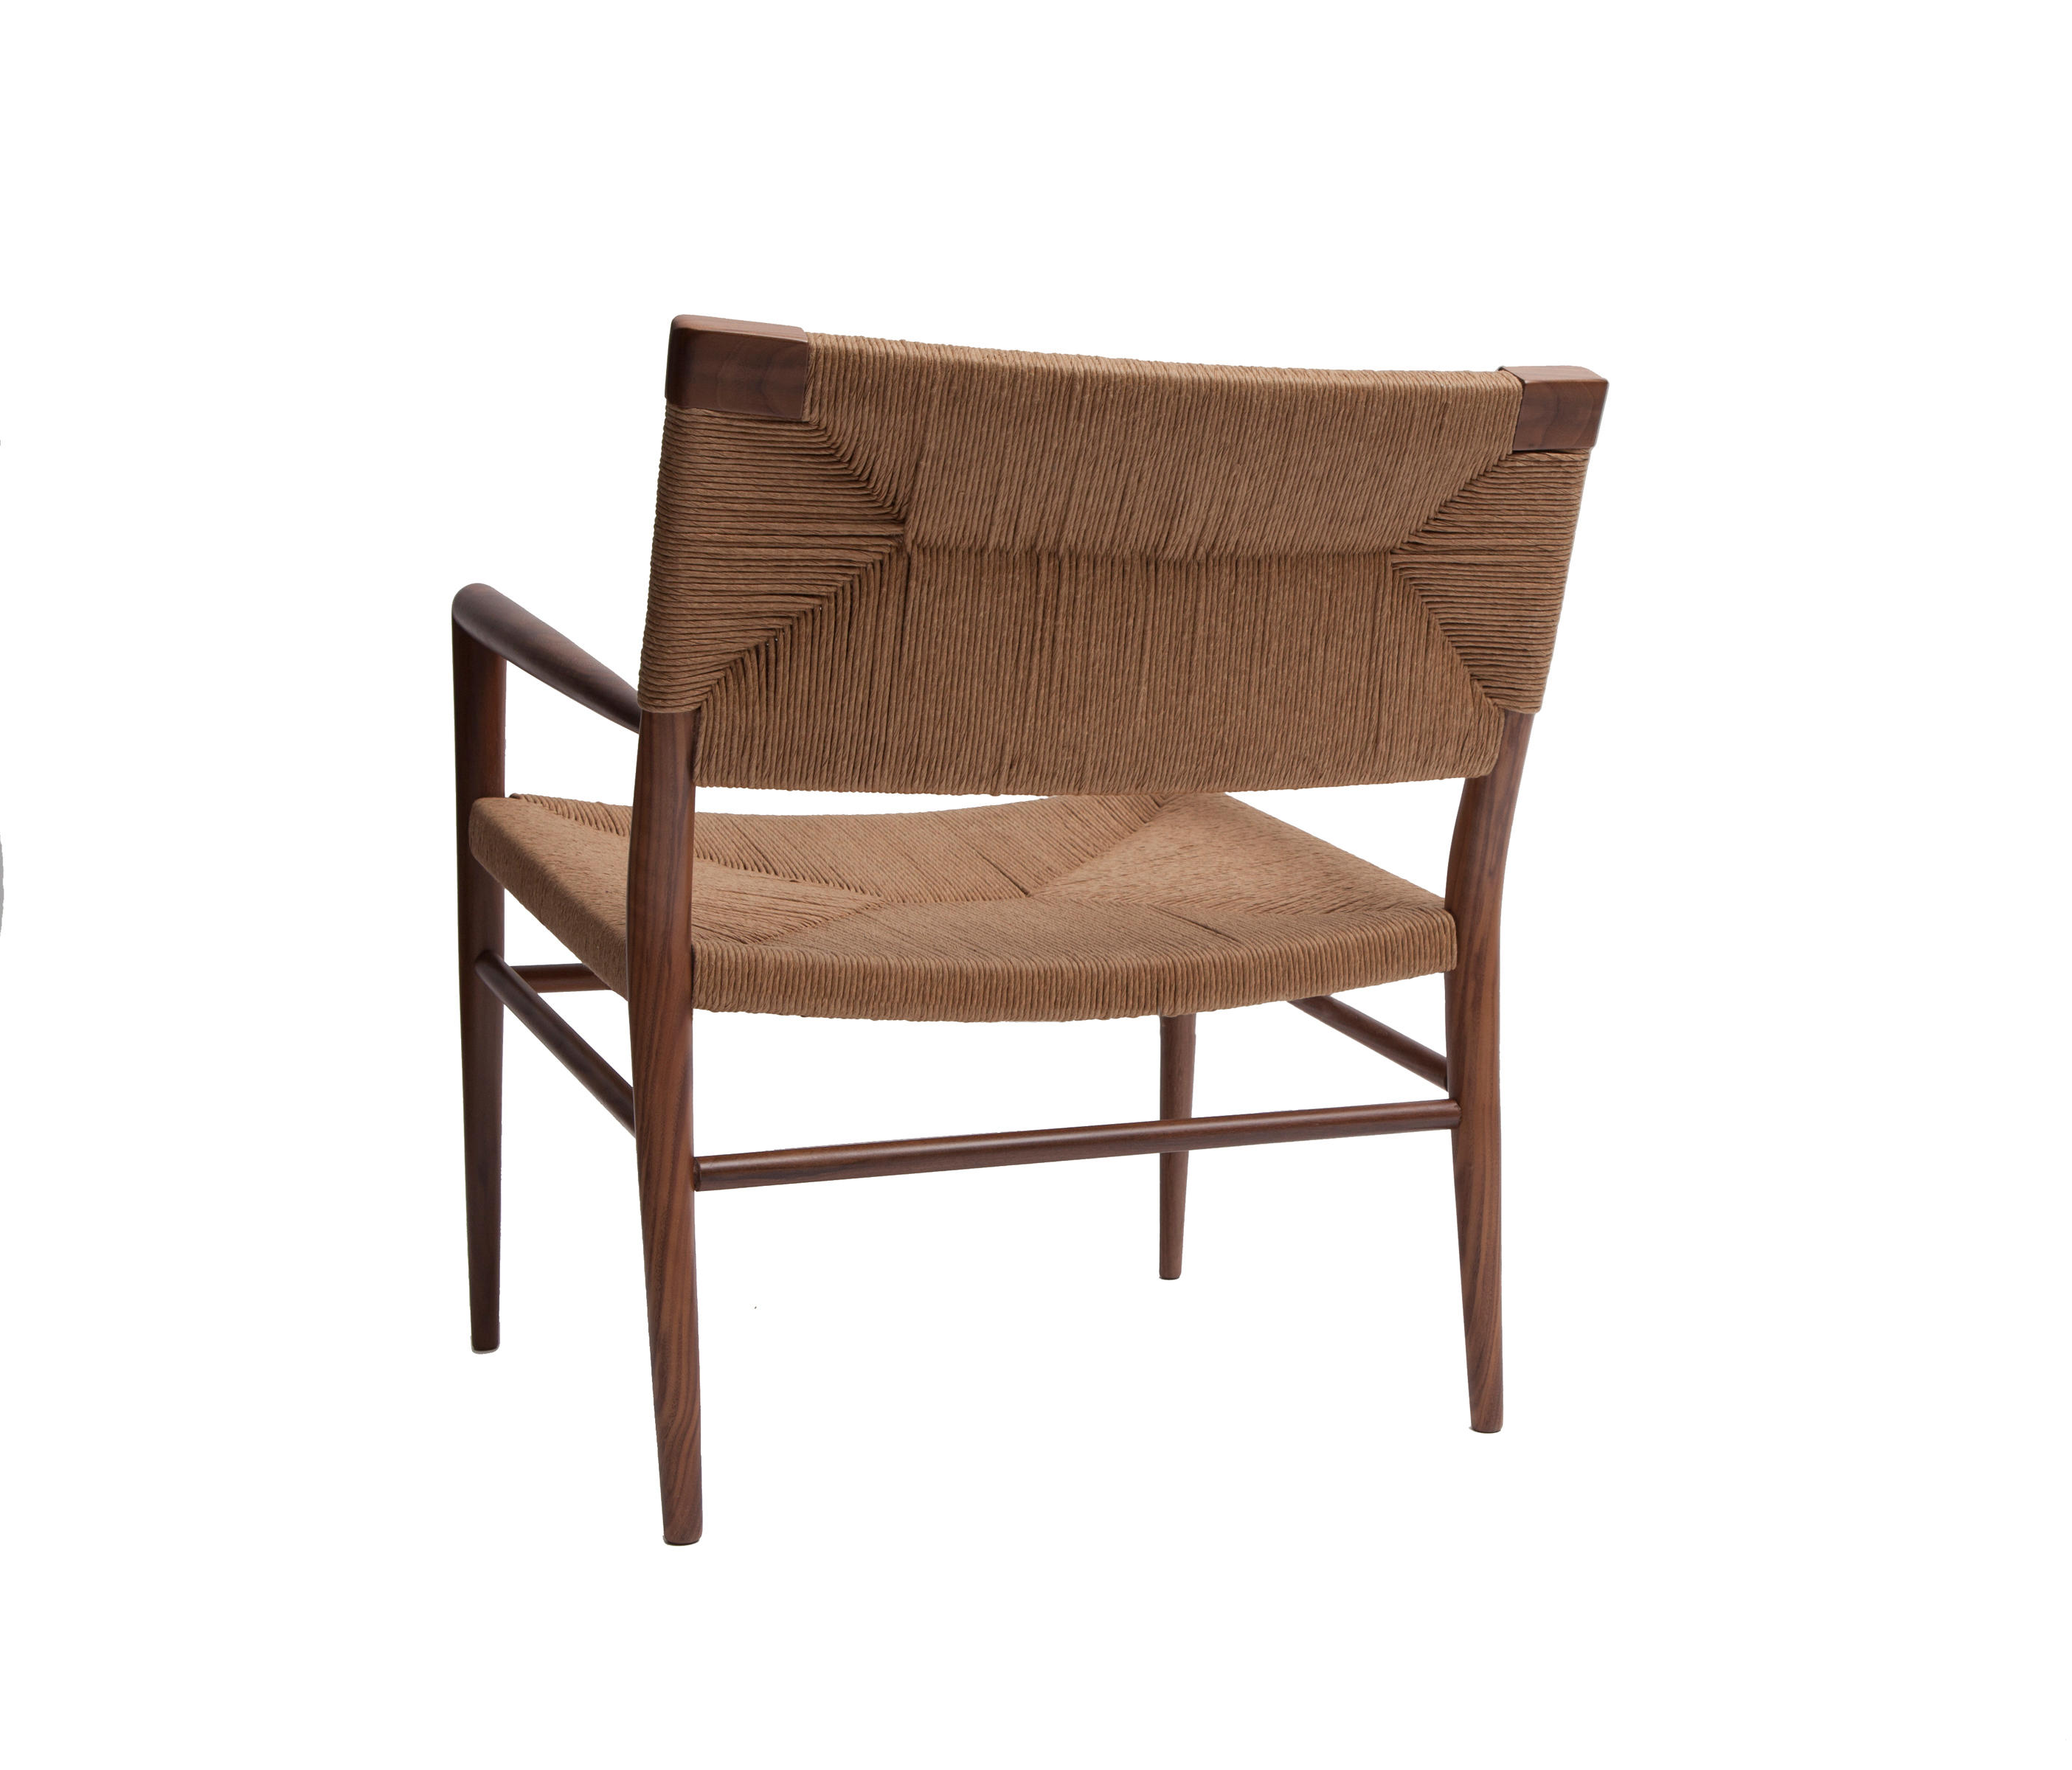 woven lounge chair rental covers rush chairs from smilow design